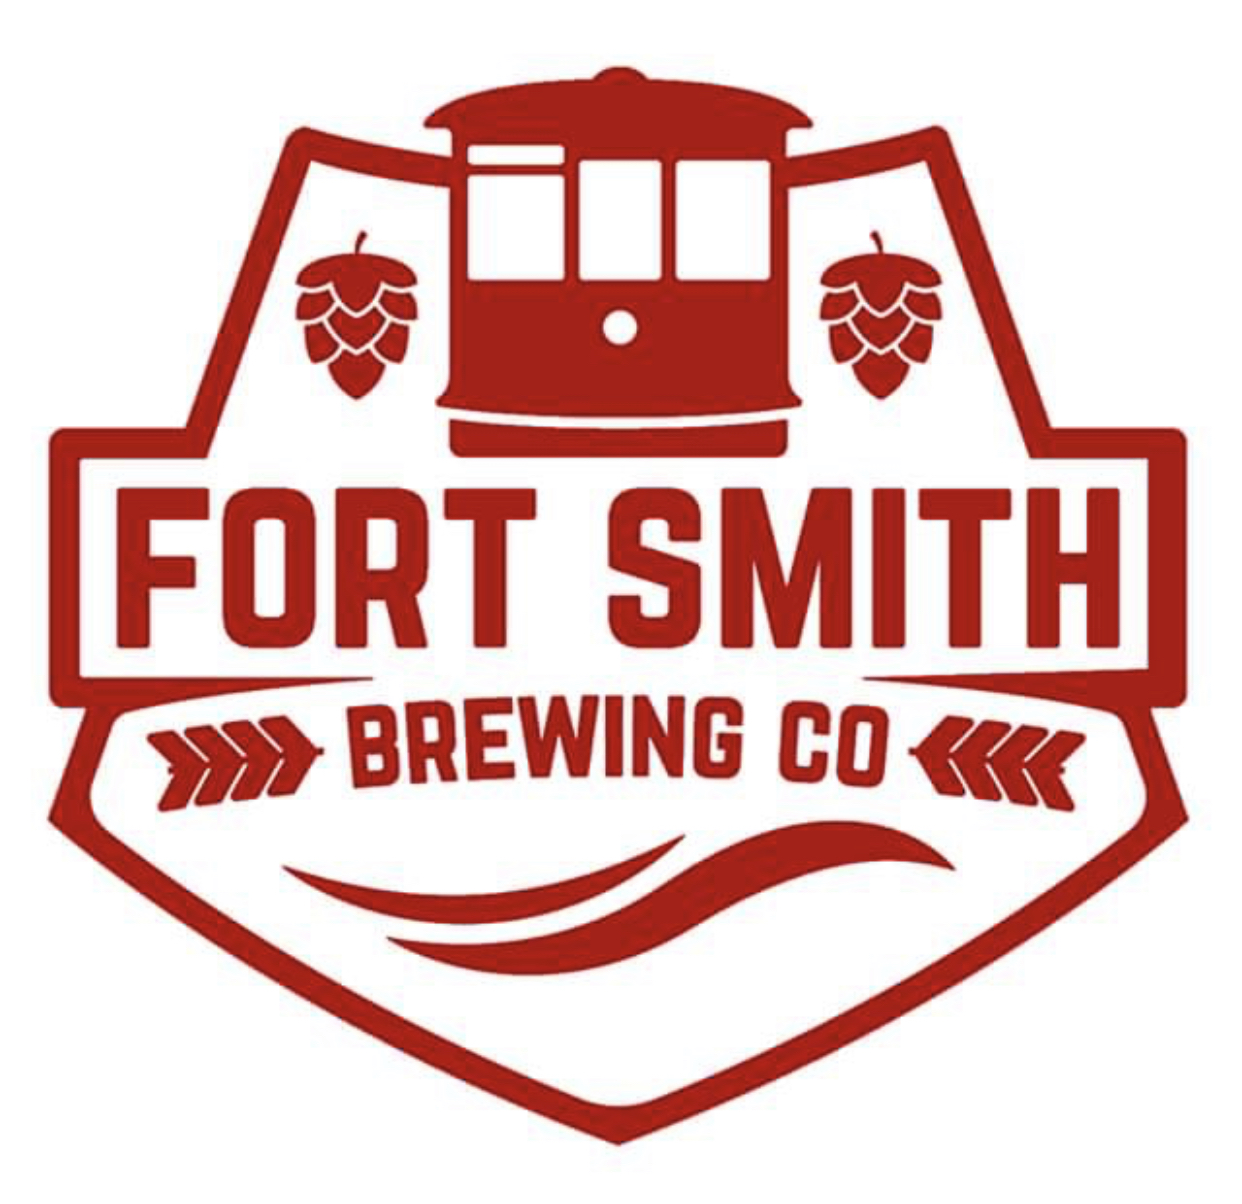 Fort Smith Brew Co.jpg